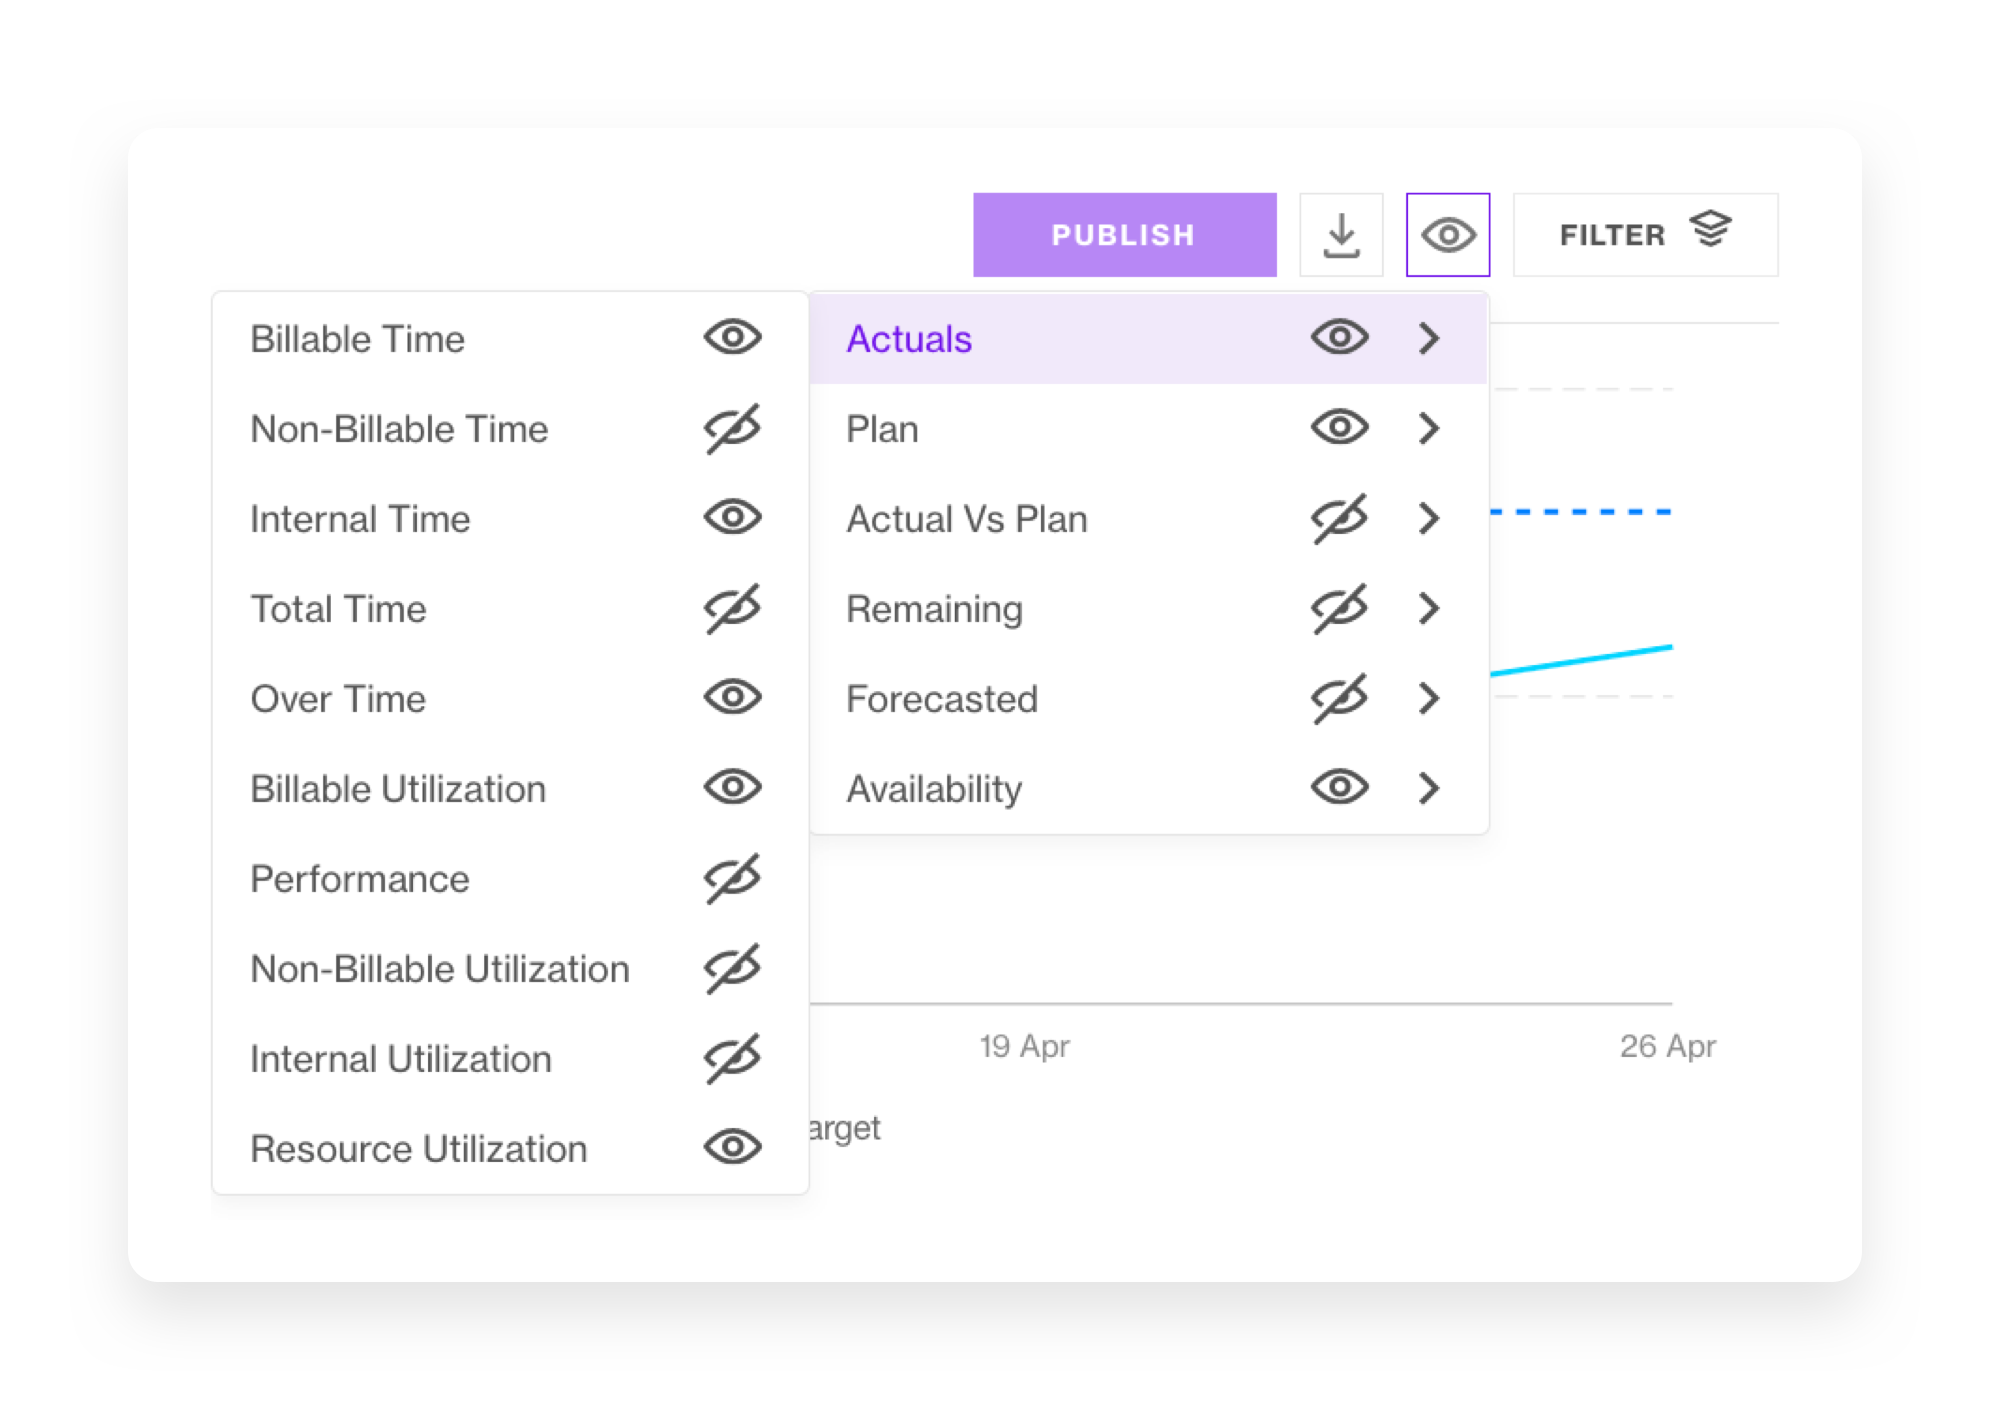 utilization filters and views